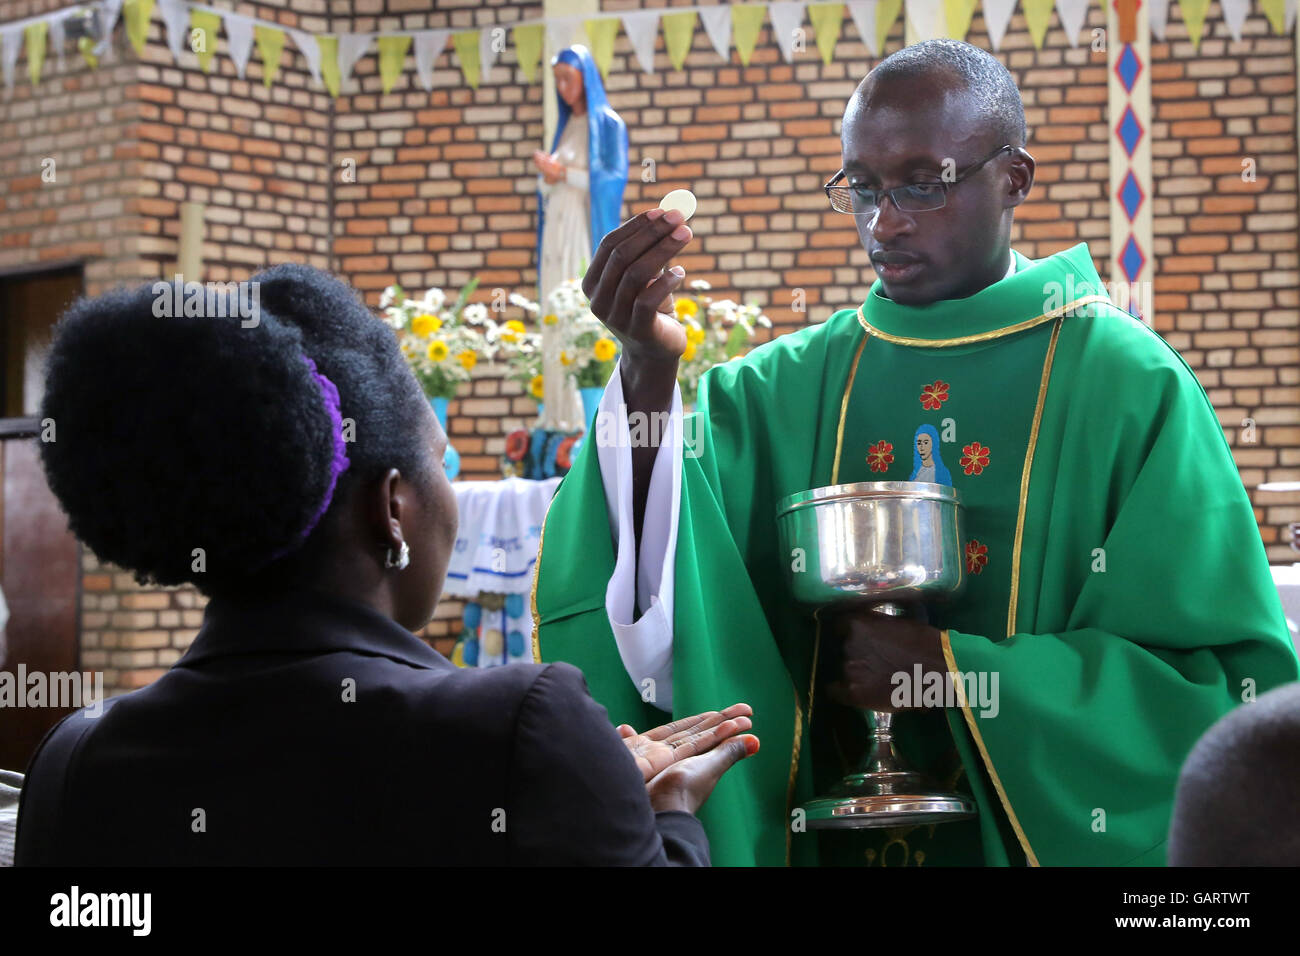 Sunday Mass in the church of the pilgrimage town KIBEHO in Rwanda, Africa. In 1981 the 'Virgin Mary', mother - Stock Image